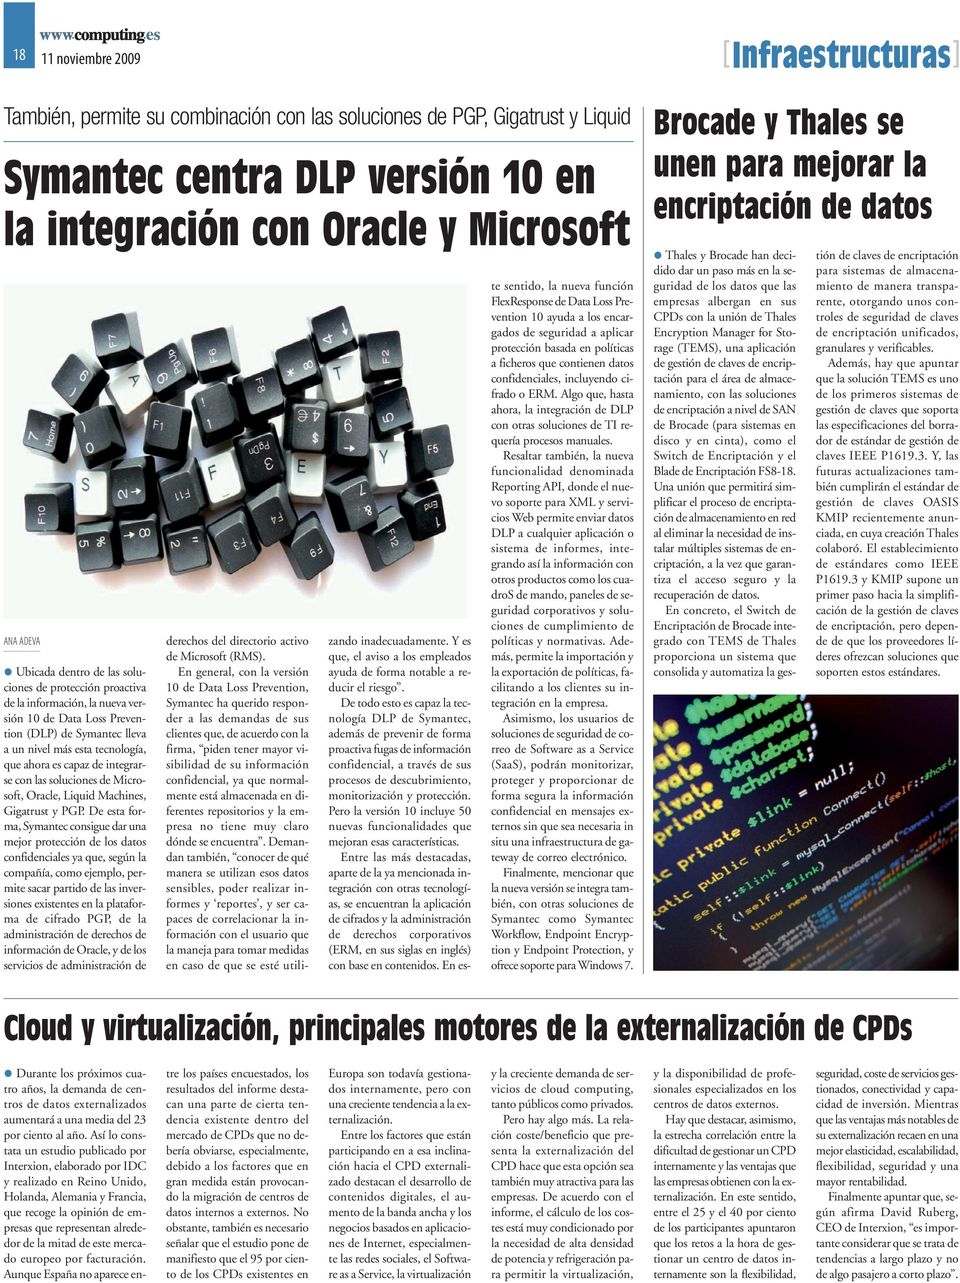 soluciones de Microsoft, Oracle, Liquid Machines, Gigatrust y PGP.